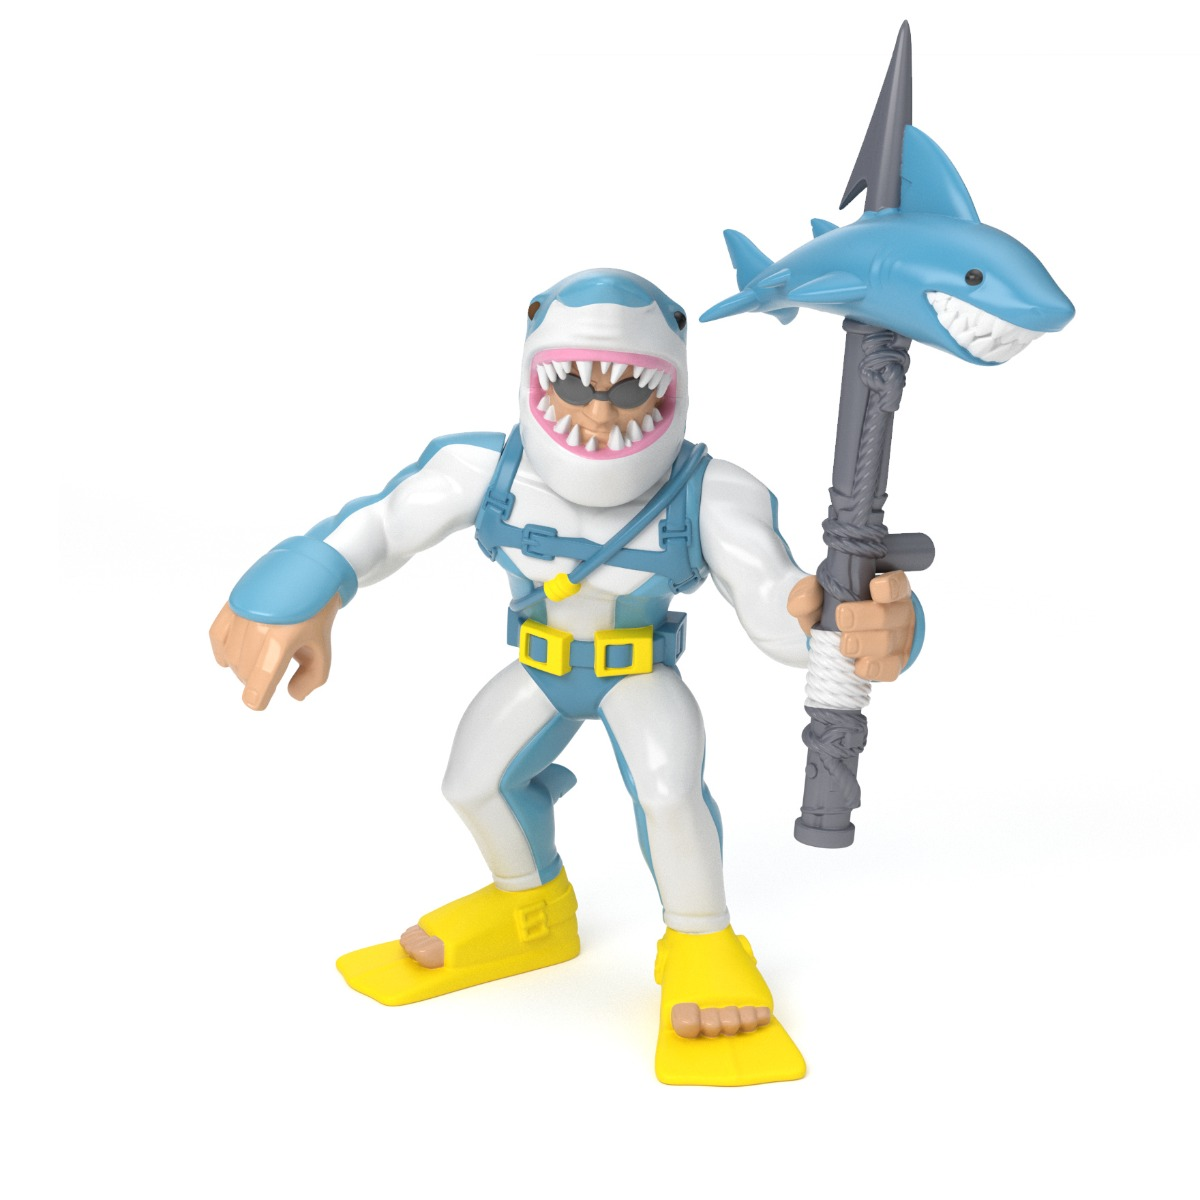 Figurina Fortnite S2 - Chomp